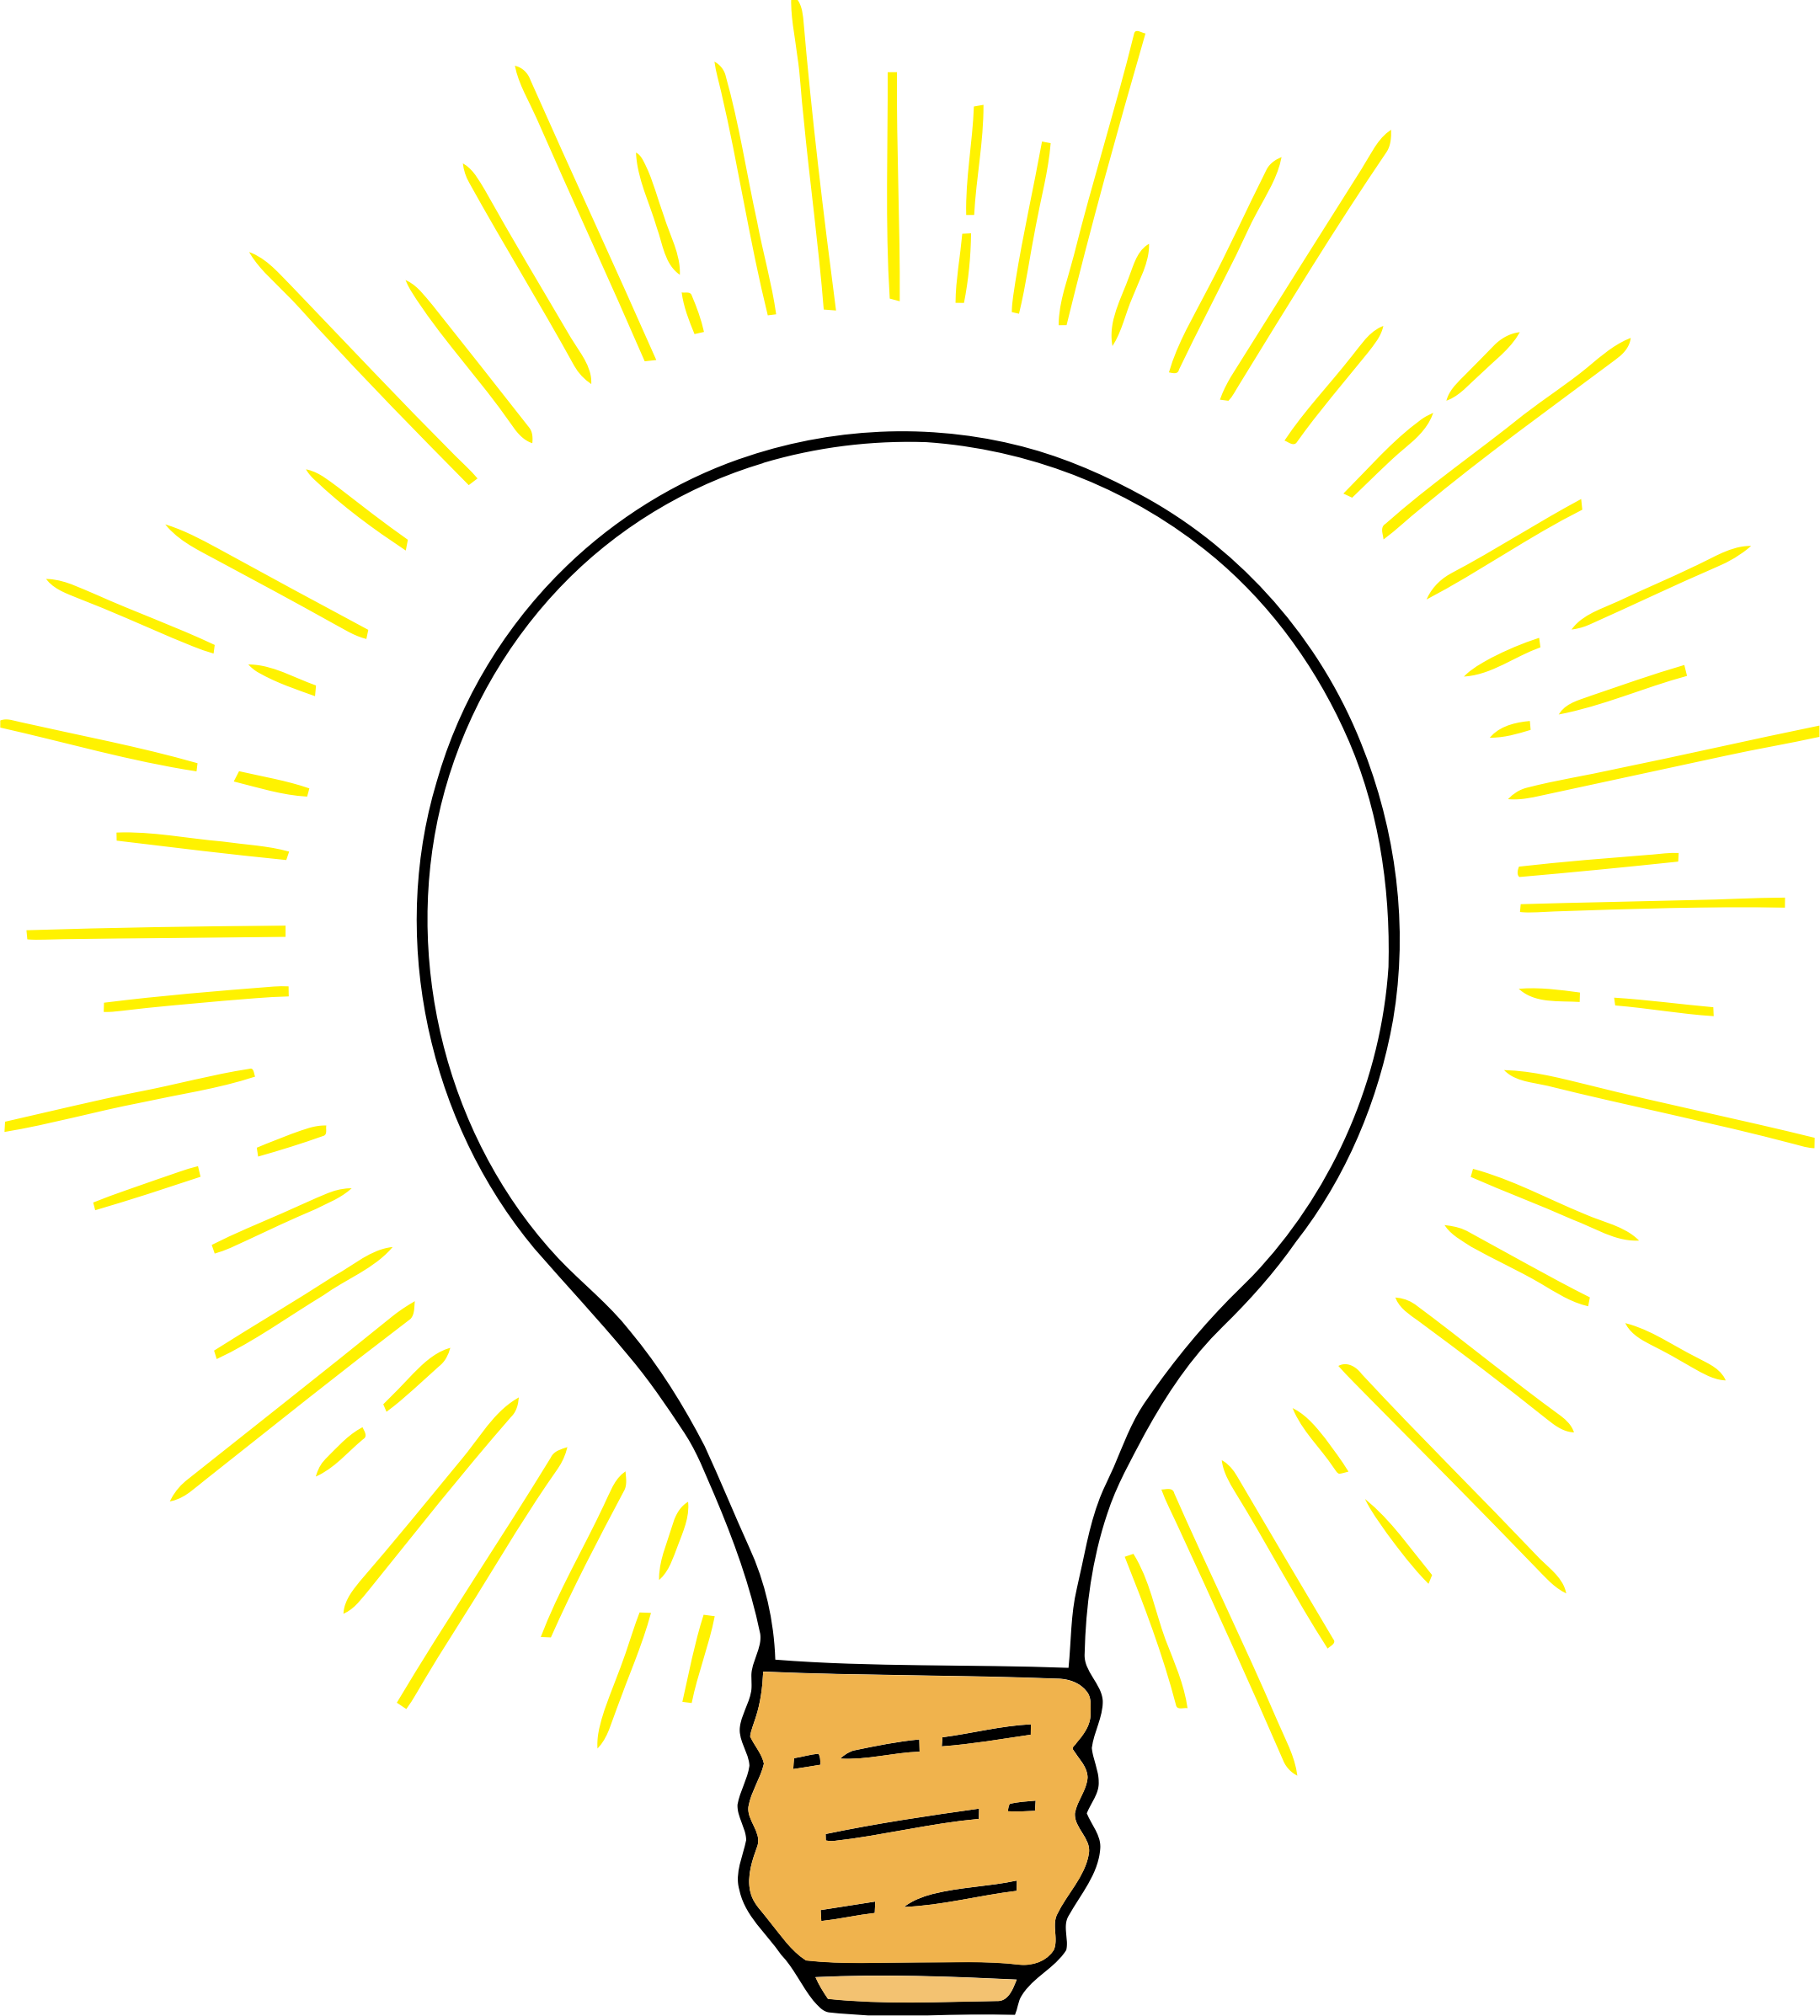 Big image png. Lightbulb clipart lighted bulb